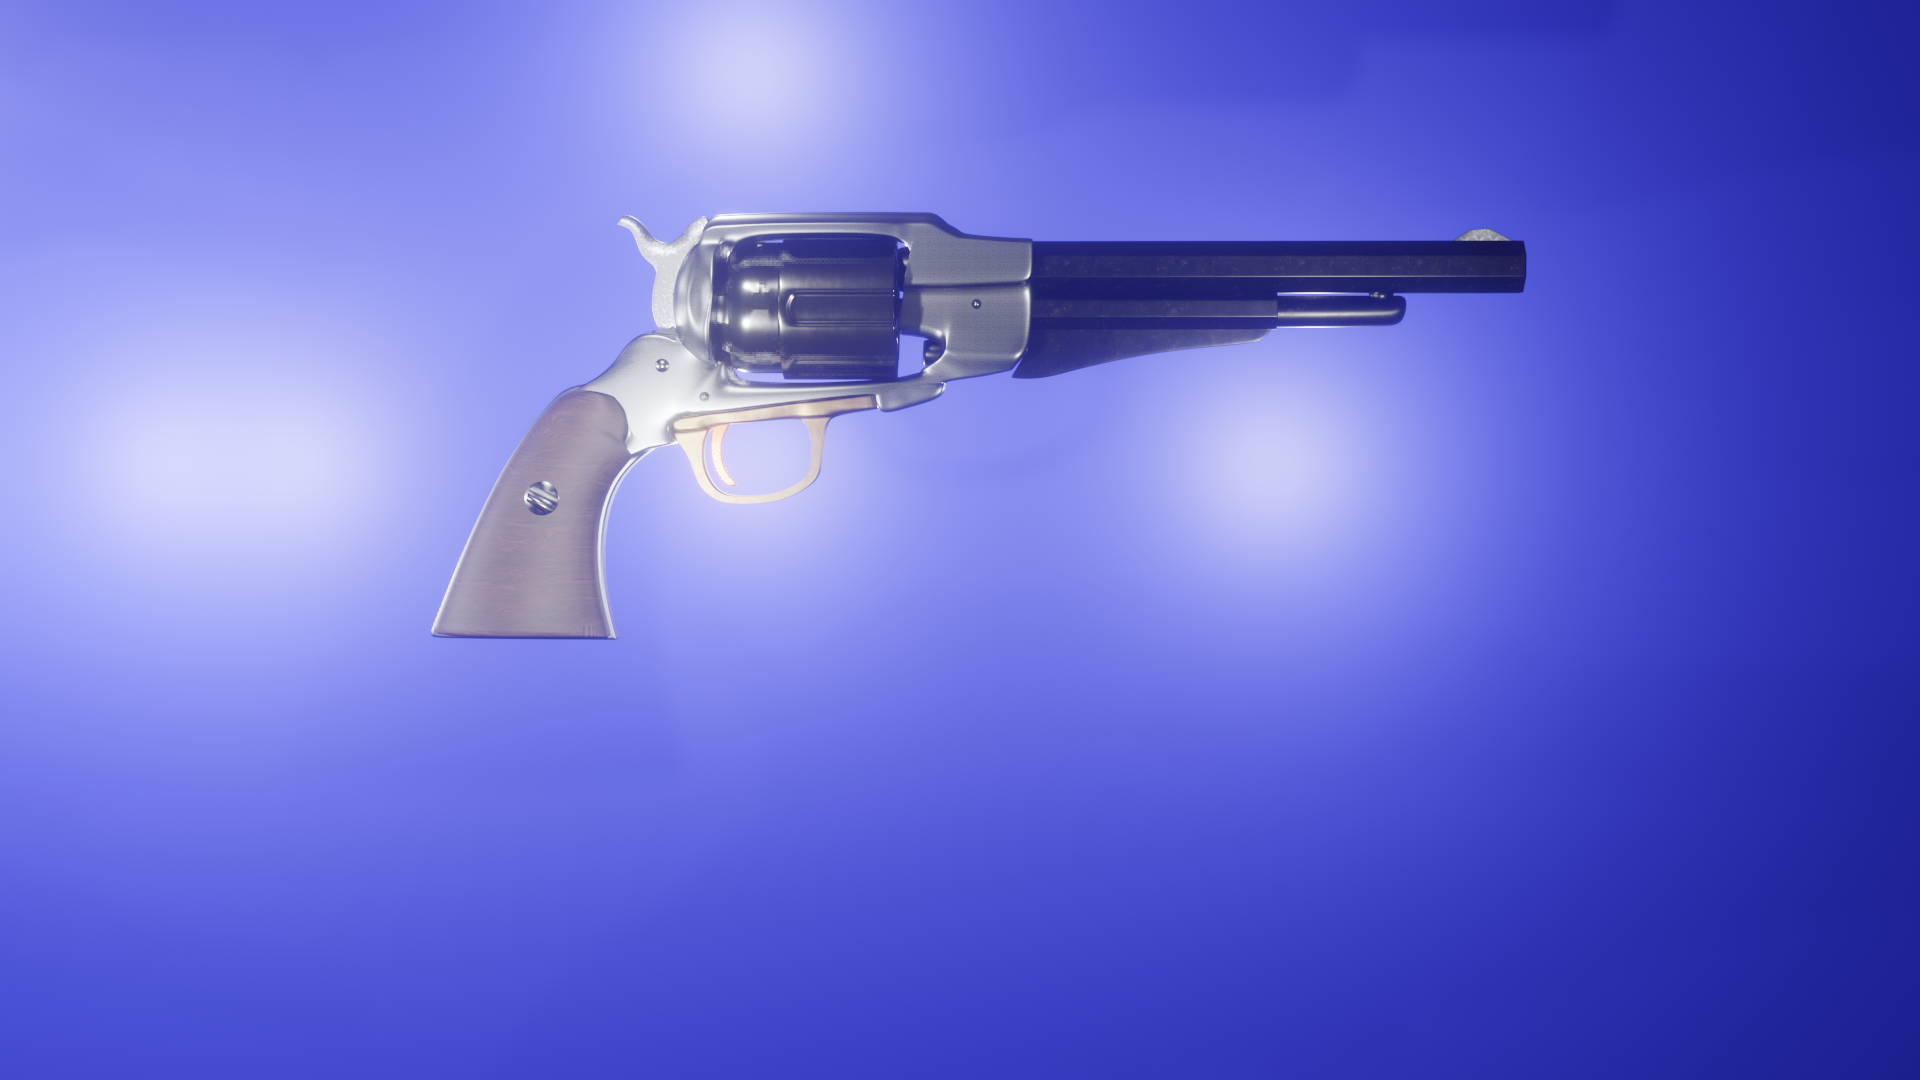 New Model Army Remington-Beals Navy Revolver preview image 1